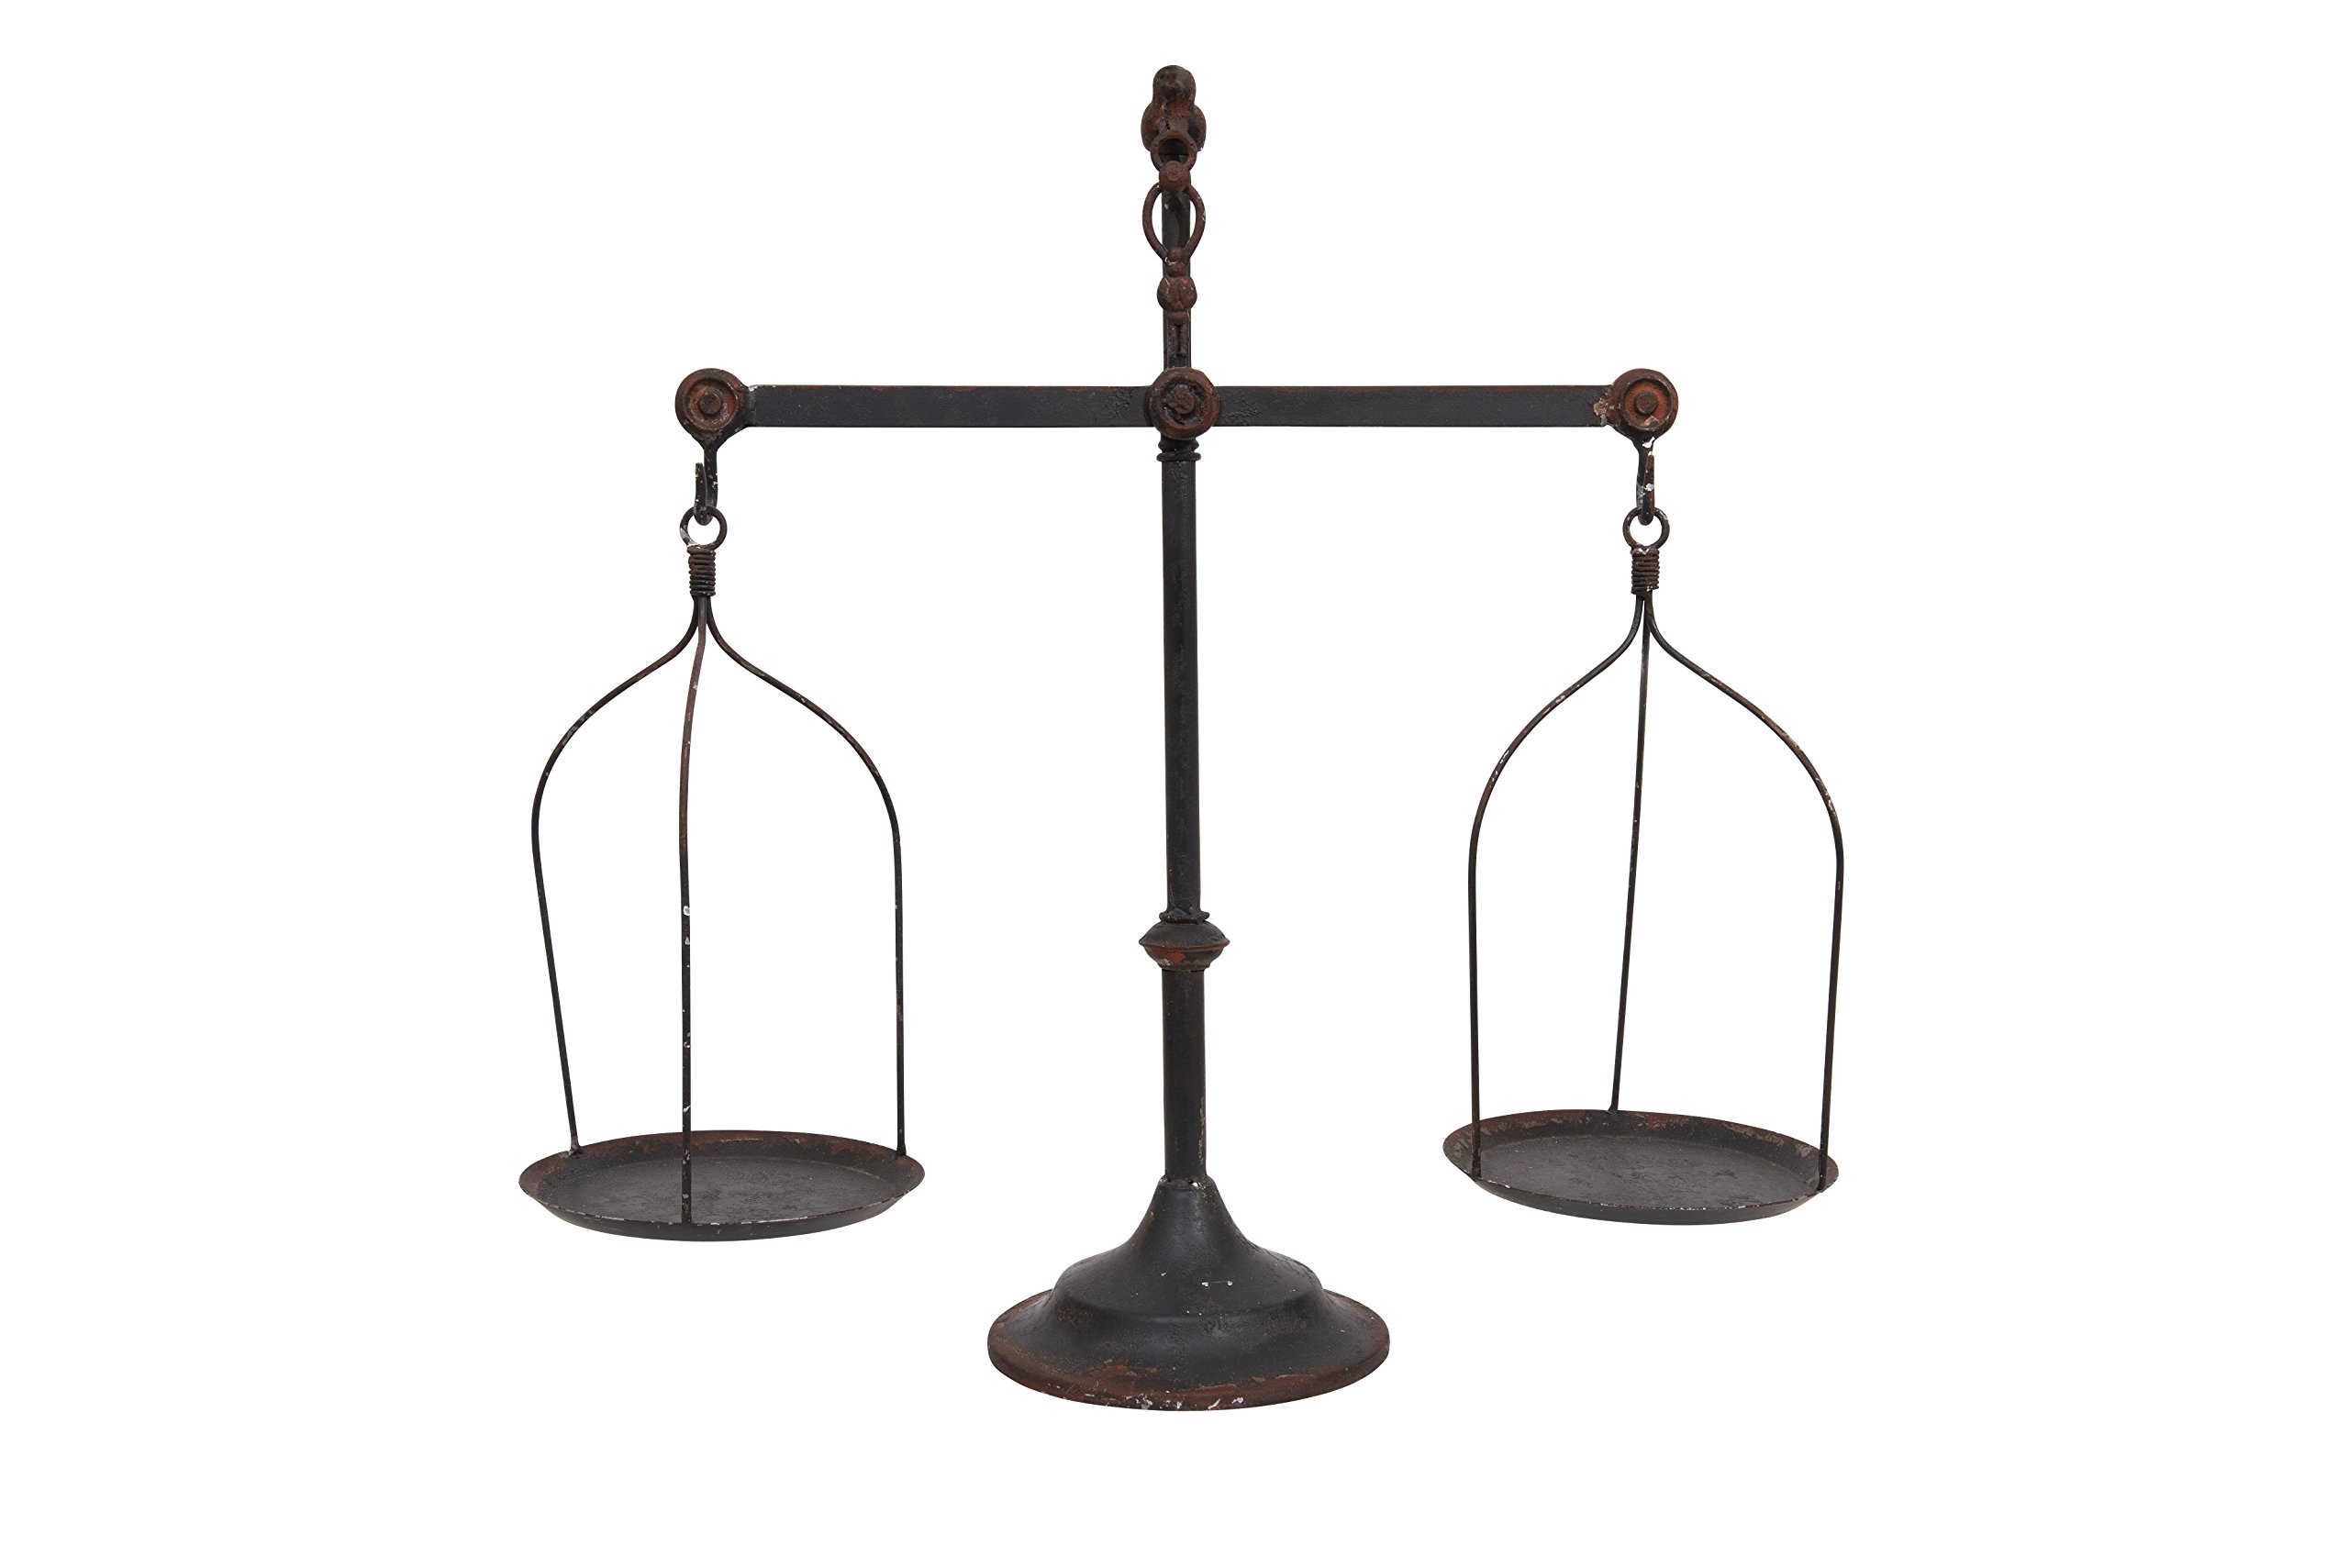 Creative Co-op Decorative Distressed Vintage Metal Scale with Bird Finial, Bronze by Creative Co-op